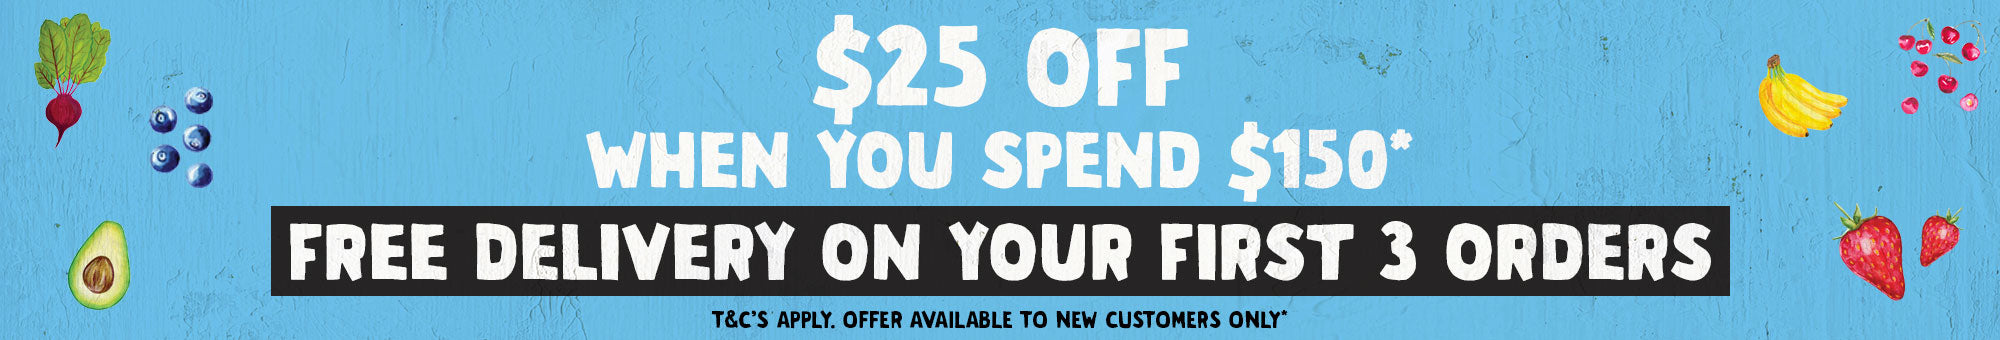 Save 25 off 150 on your first shop